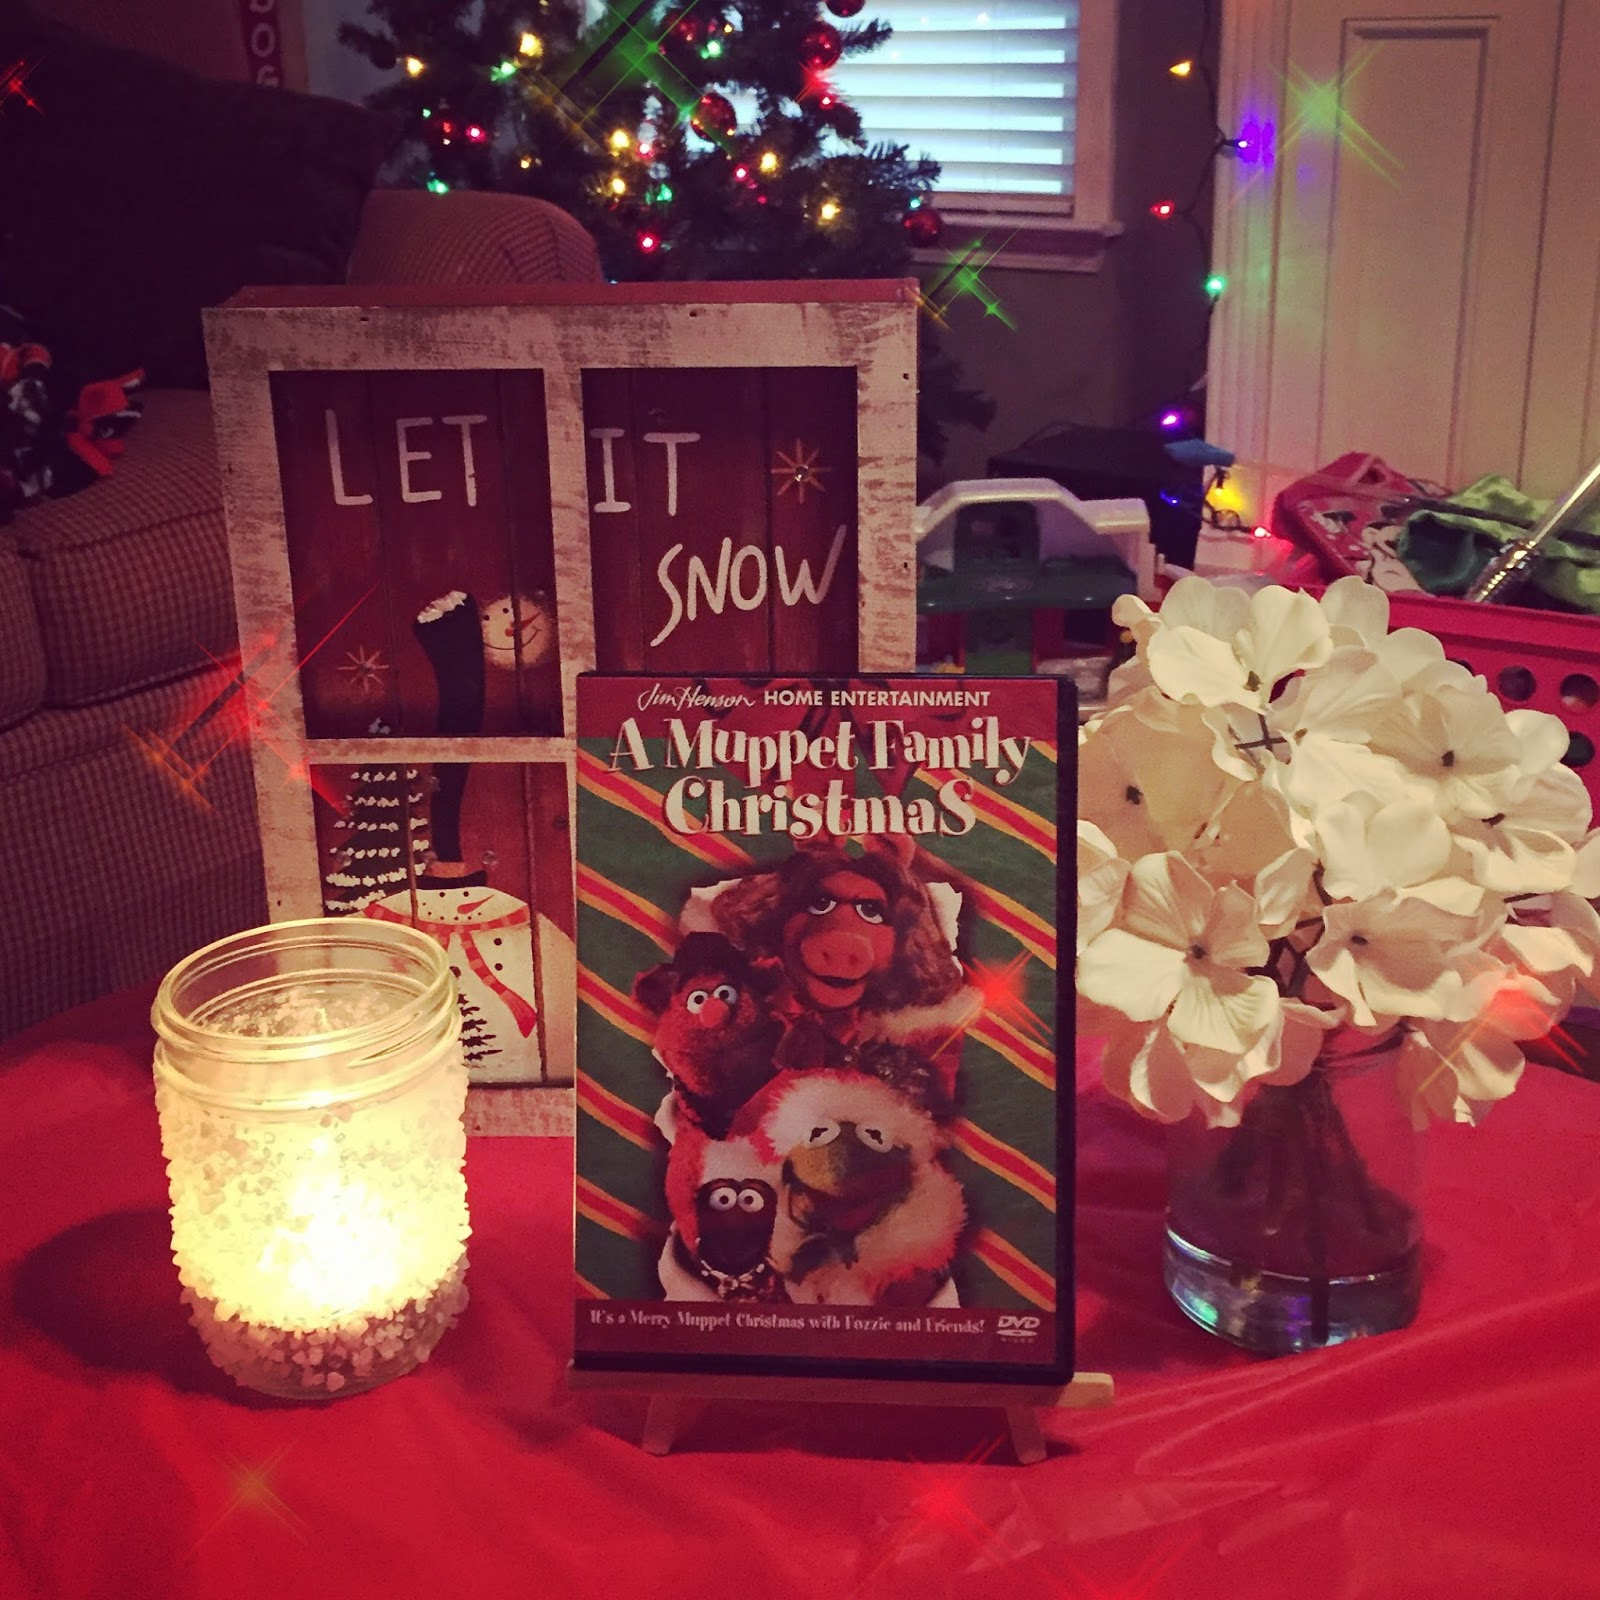 WellYellowThere: A Muppet Family Christmas Movie Night & The Candy Store